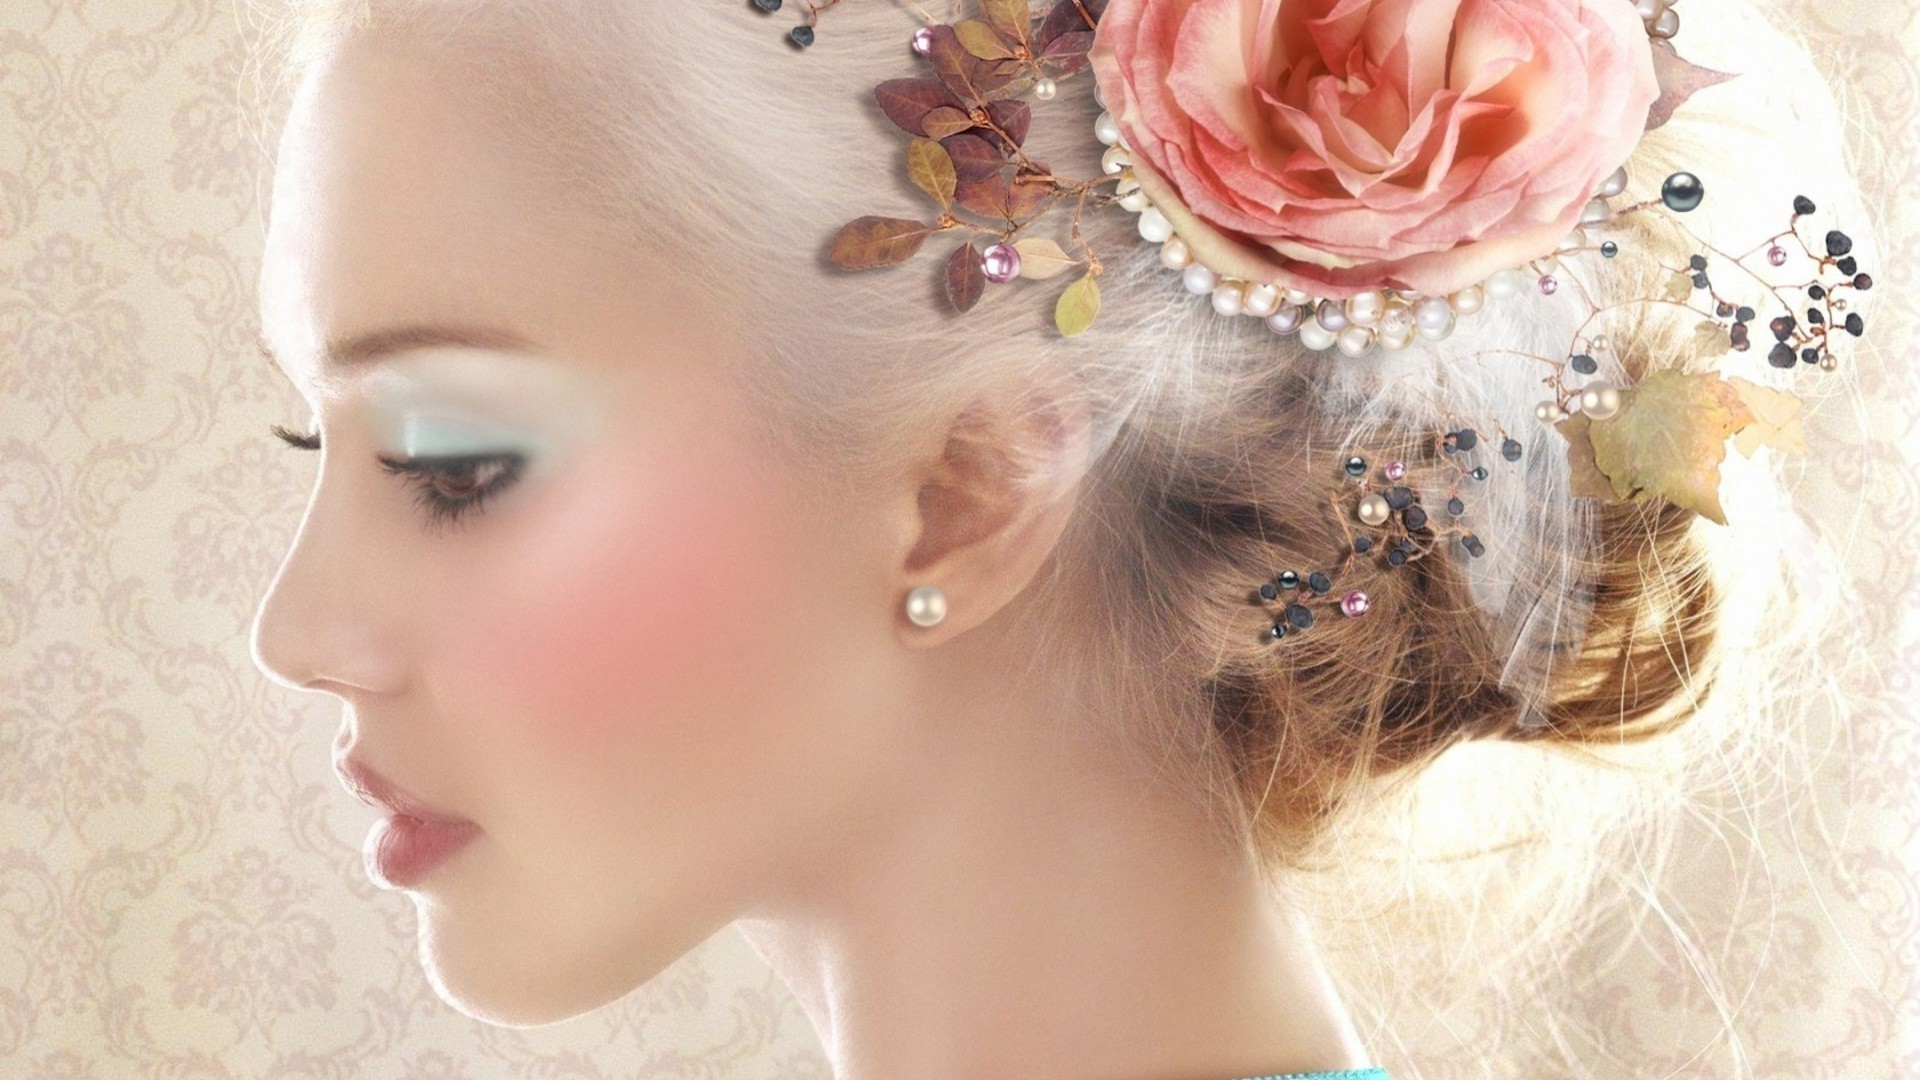 The Girl With The Rose In Her Hair Android Wallpapers